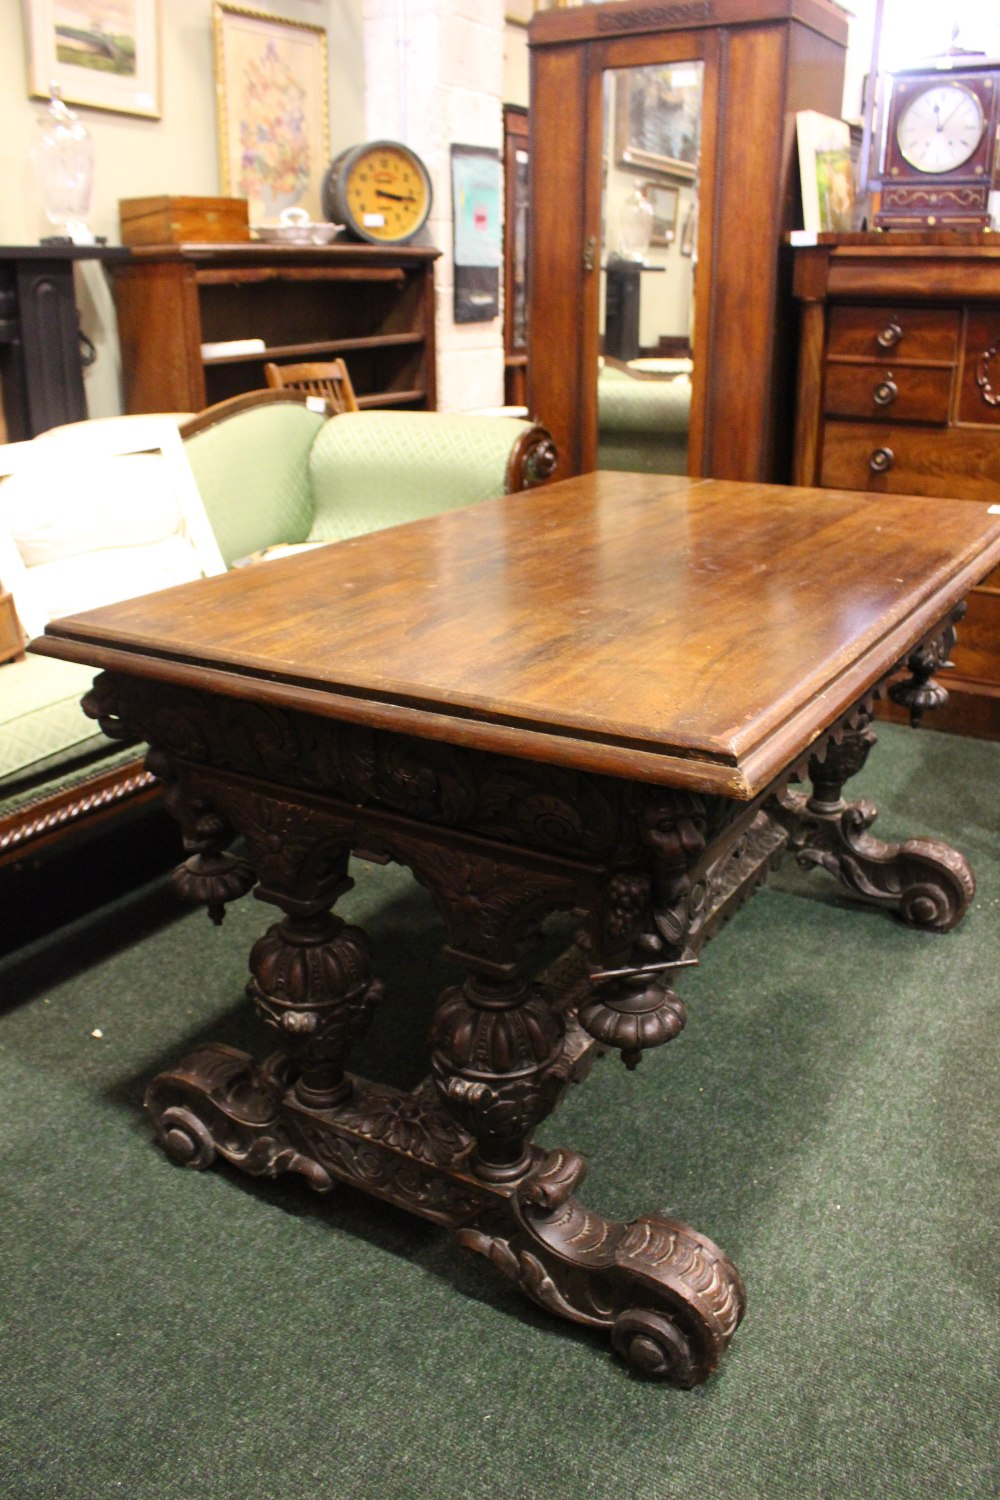 Lot 54 - A VERY LARGE OAK CARVED 19TH CENTURY TRESTLE TABLE, with carved lion head canted corners, raised